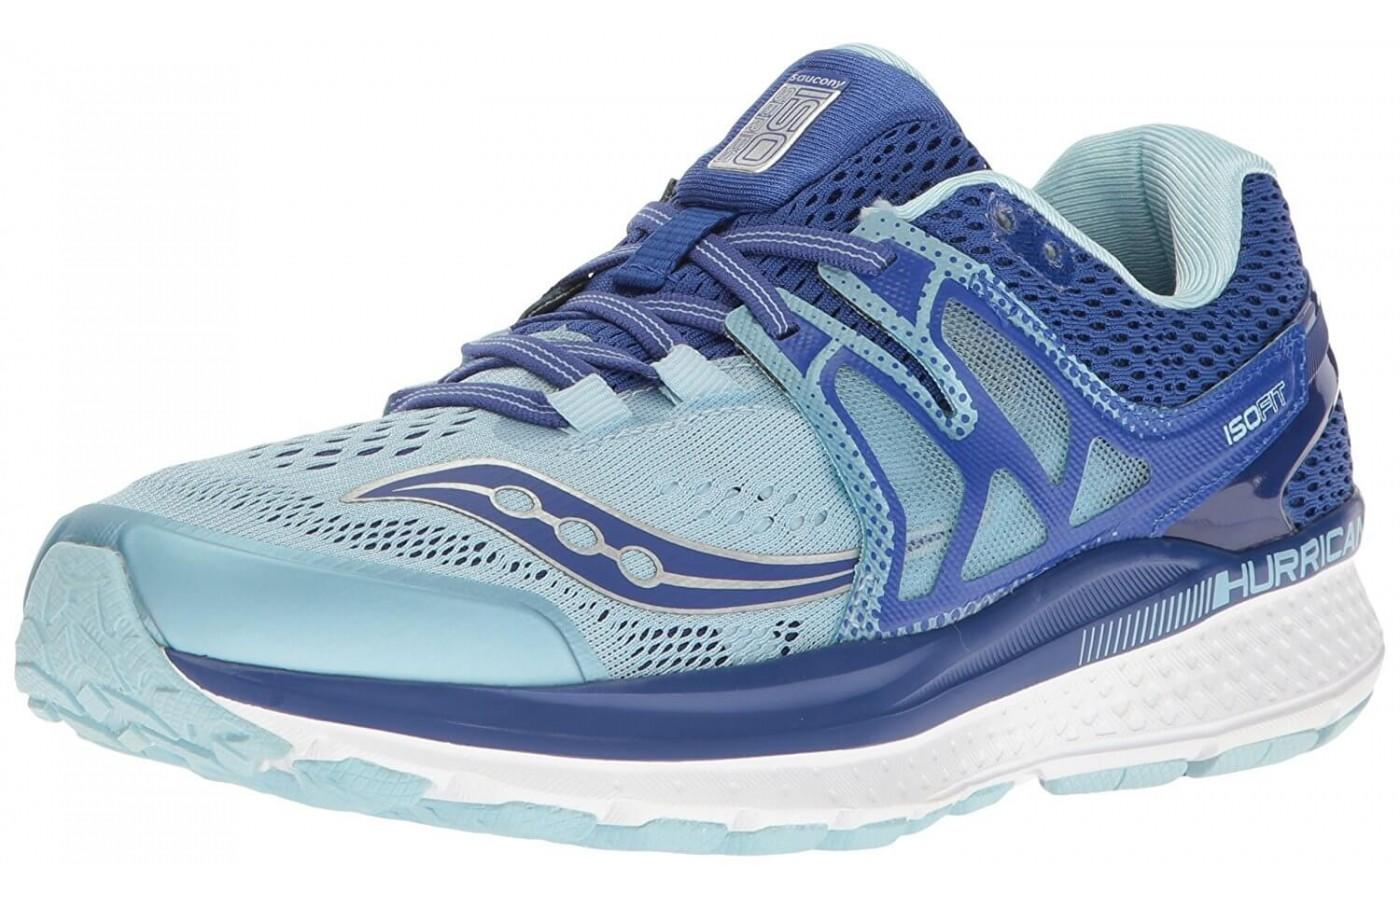 This is the Saucony Hurricane ISO 3